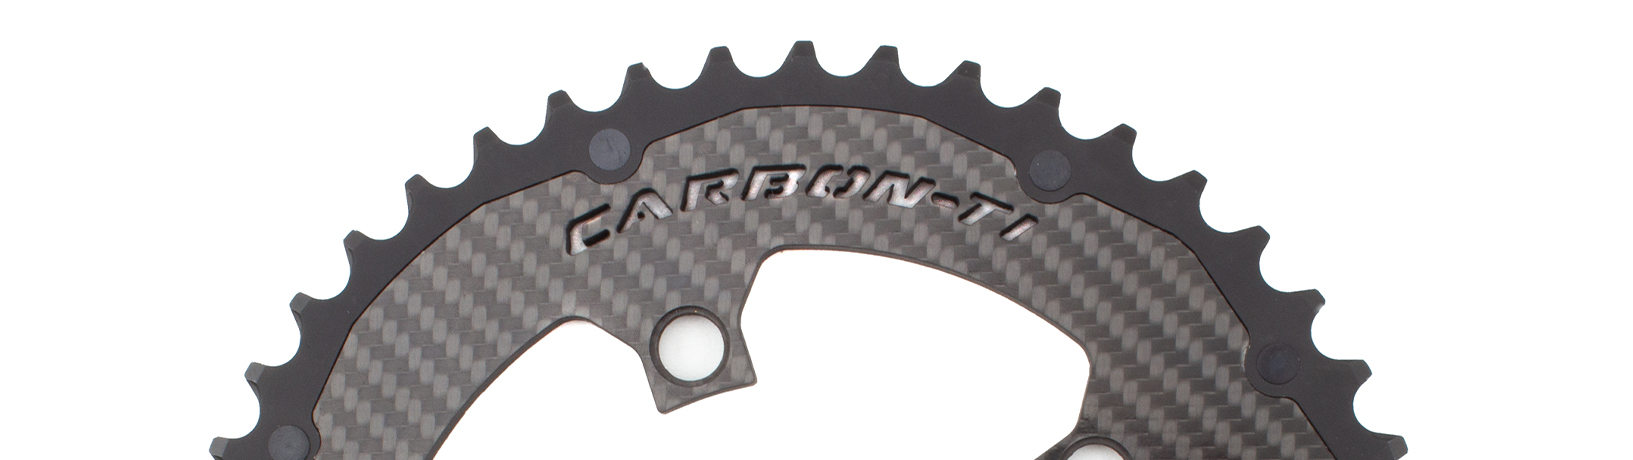 carbon-ti-bicycle-stuff-x-carboring-axs-1